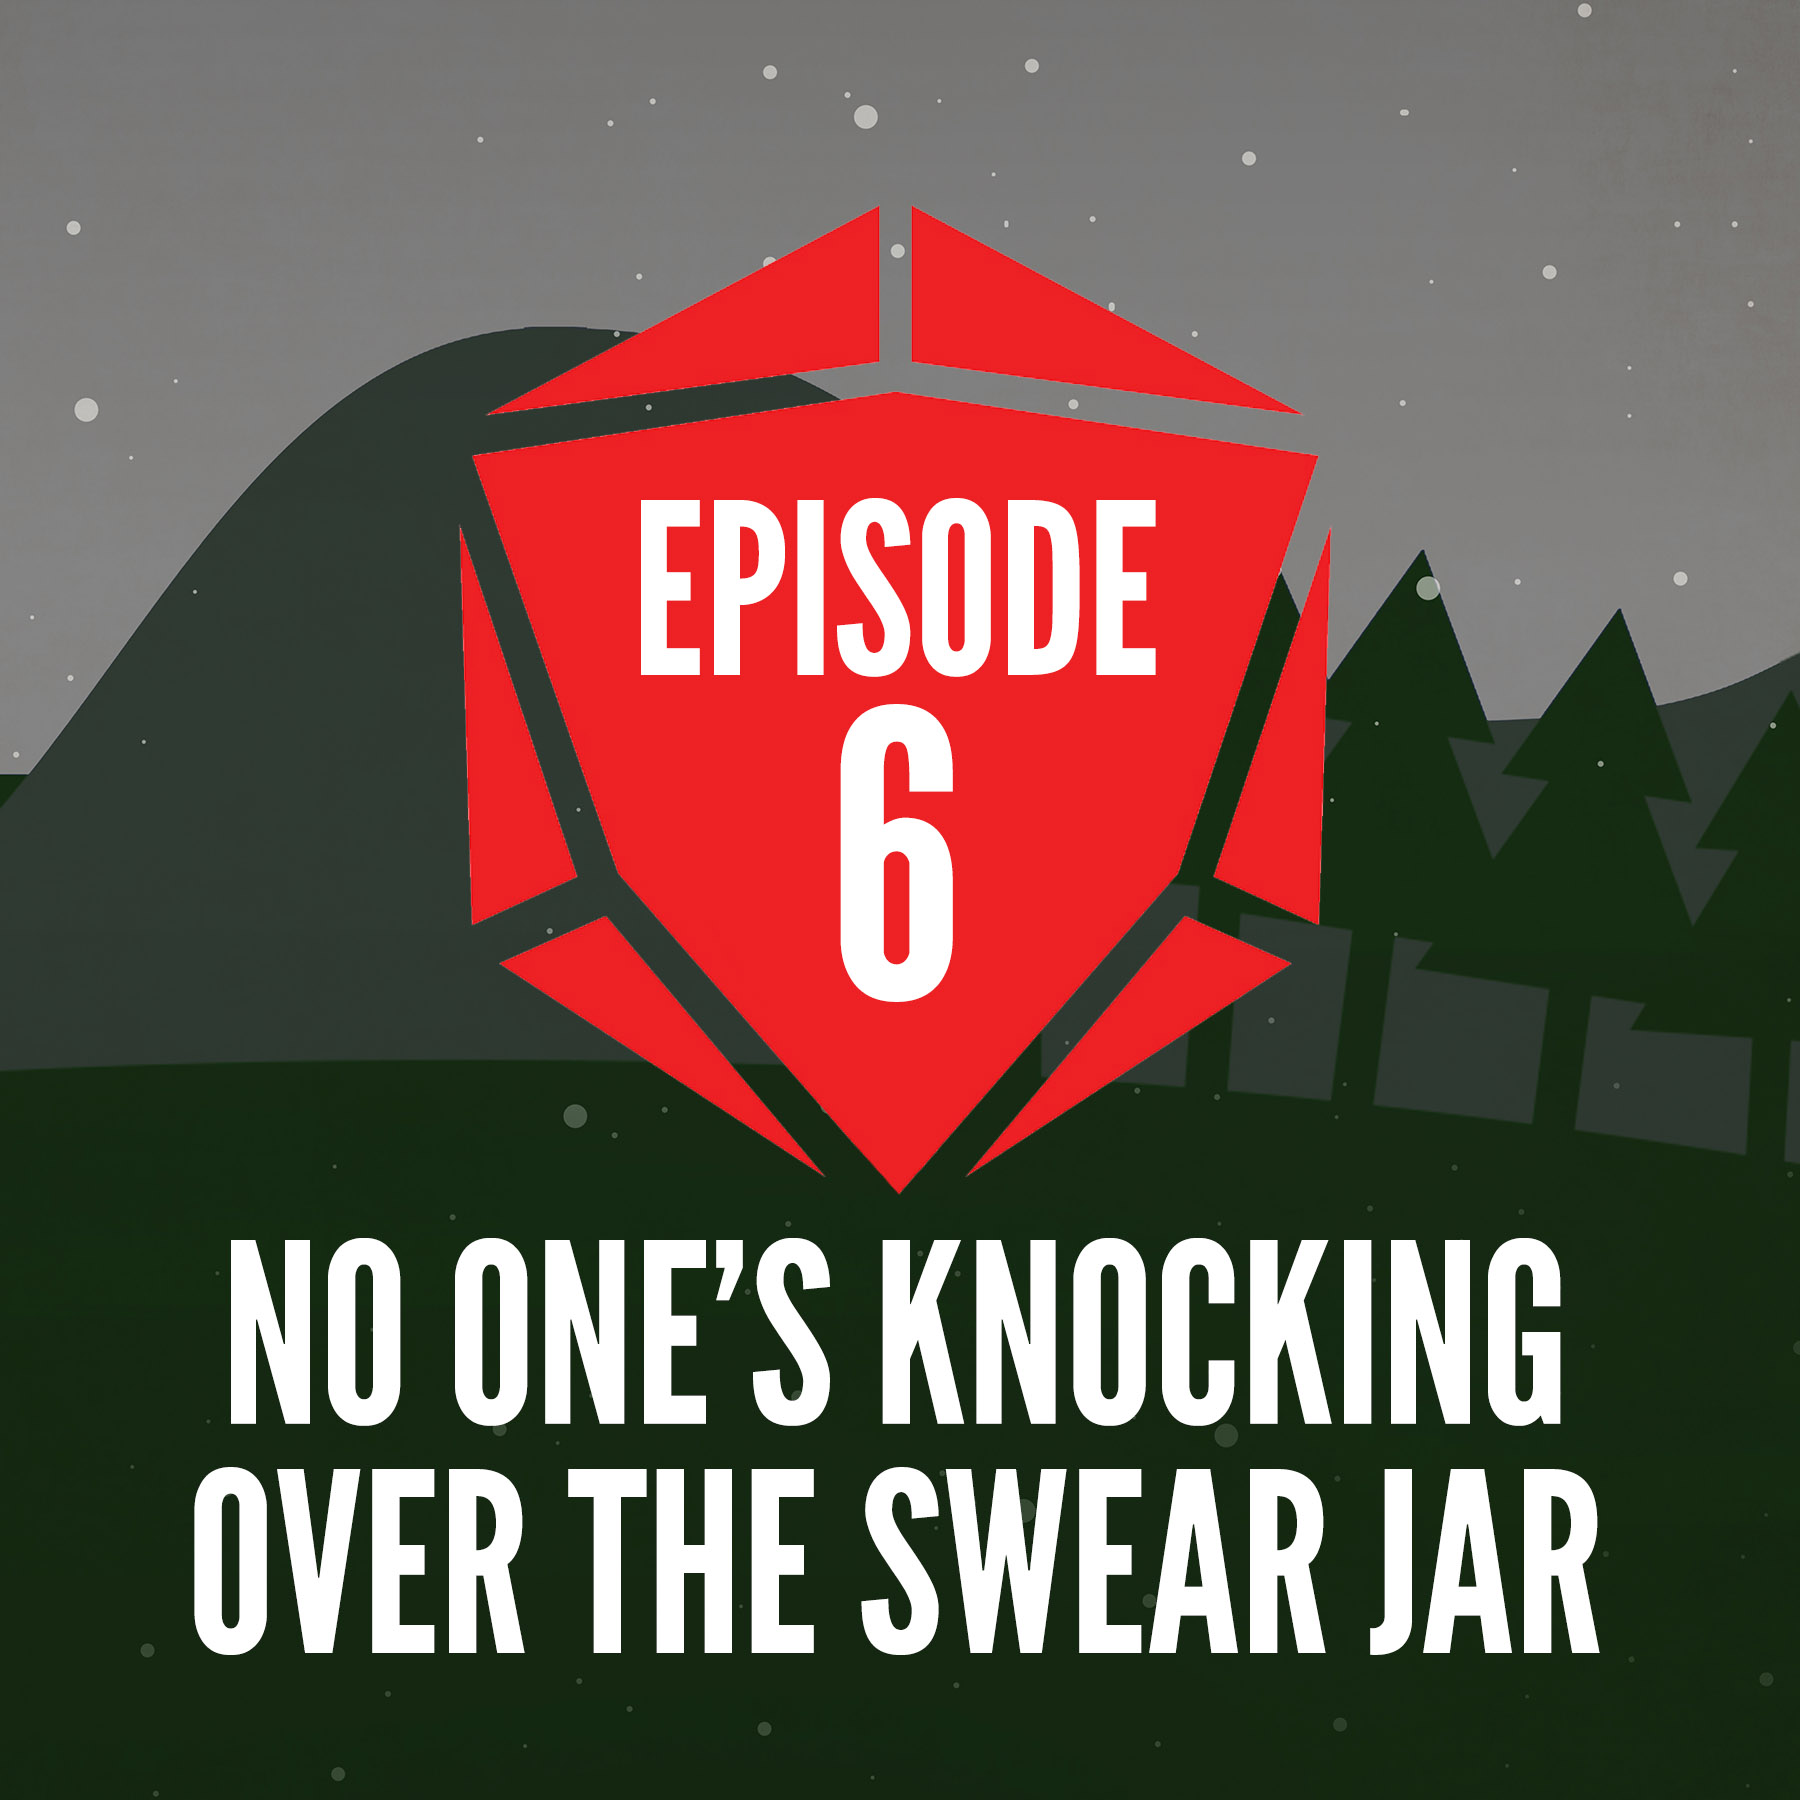 Episode 6: No One's Knocking Over the Swear Jar